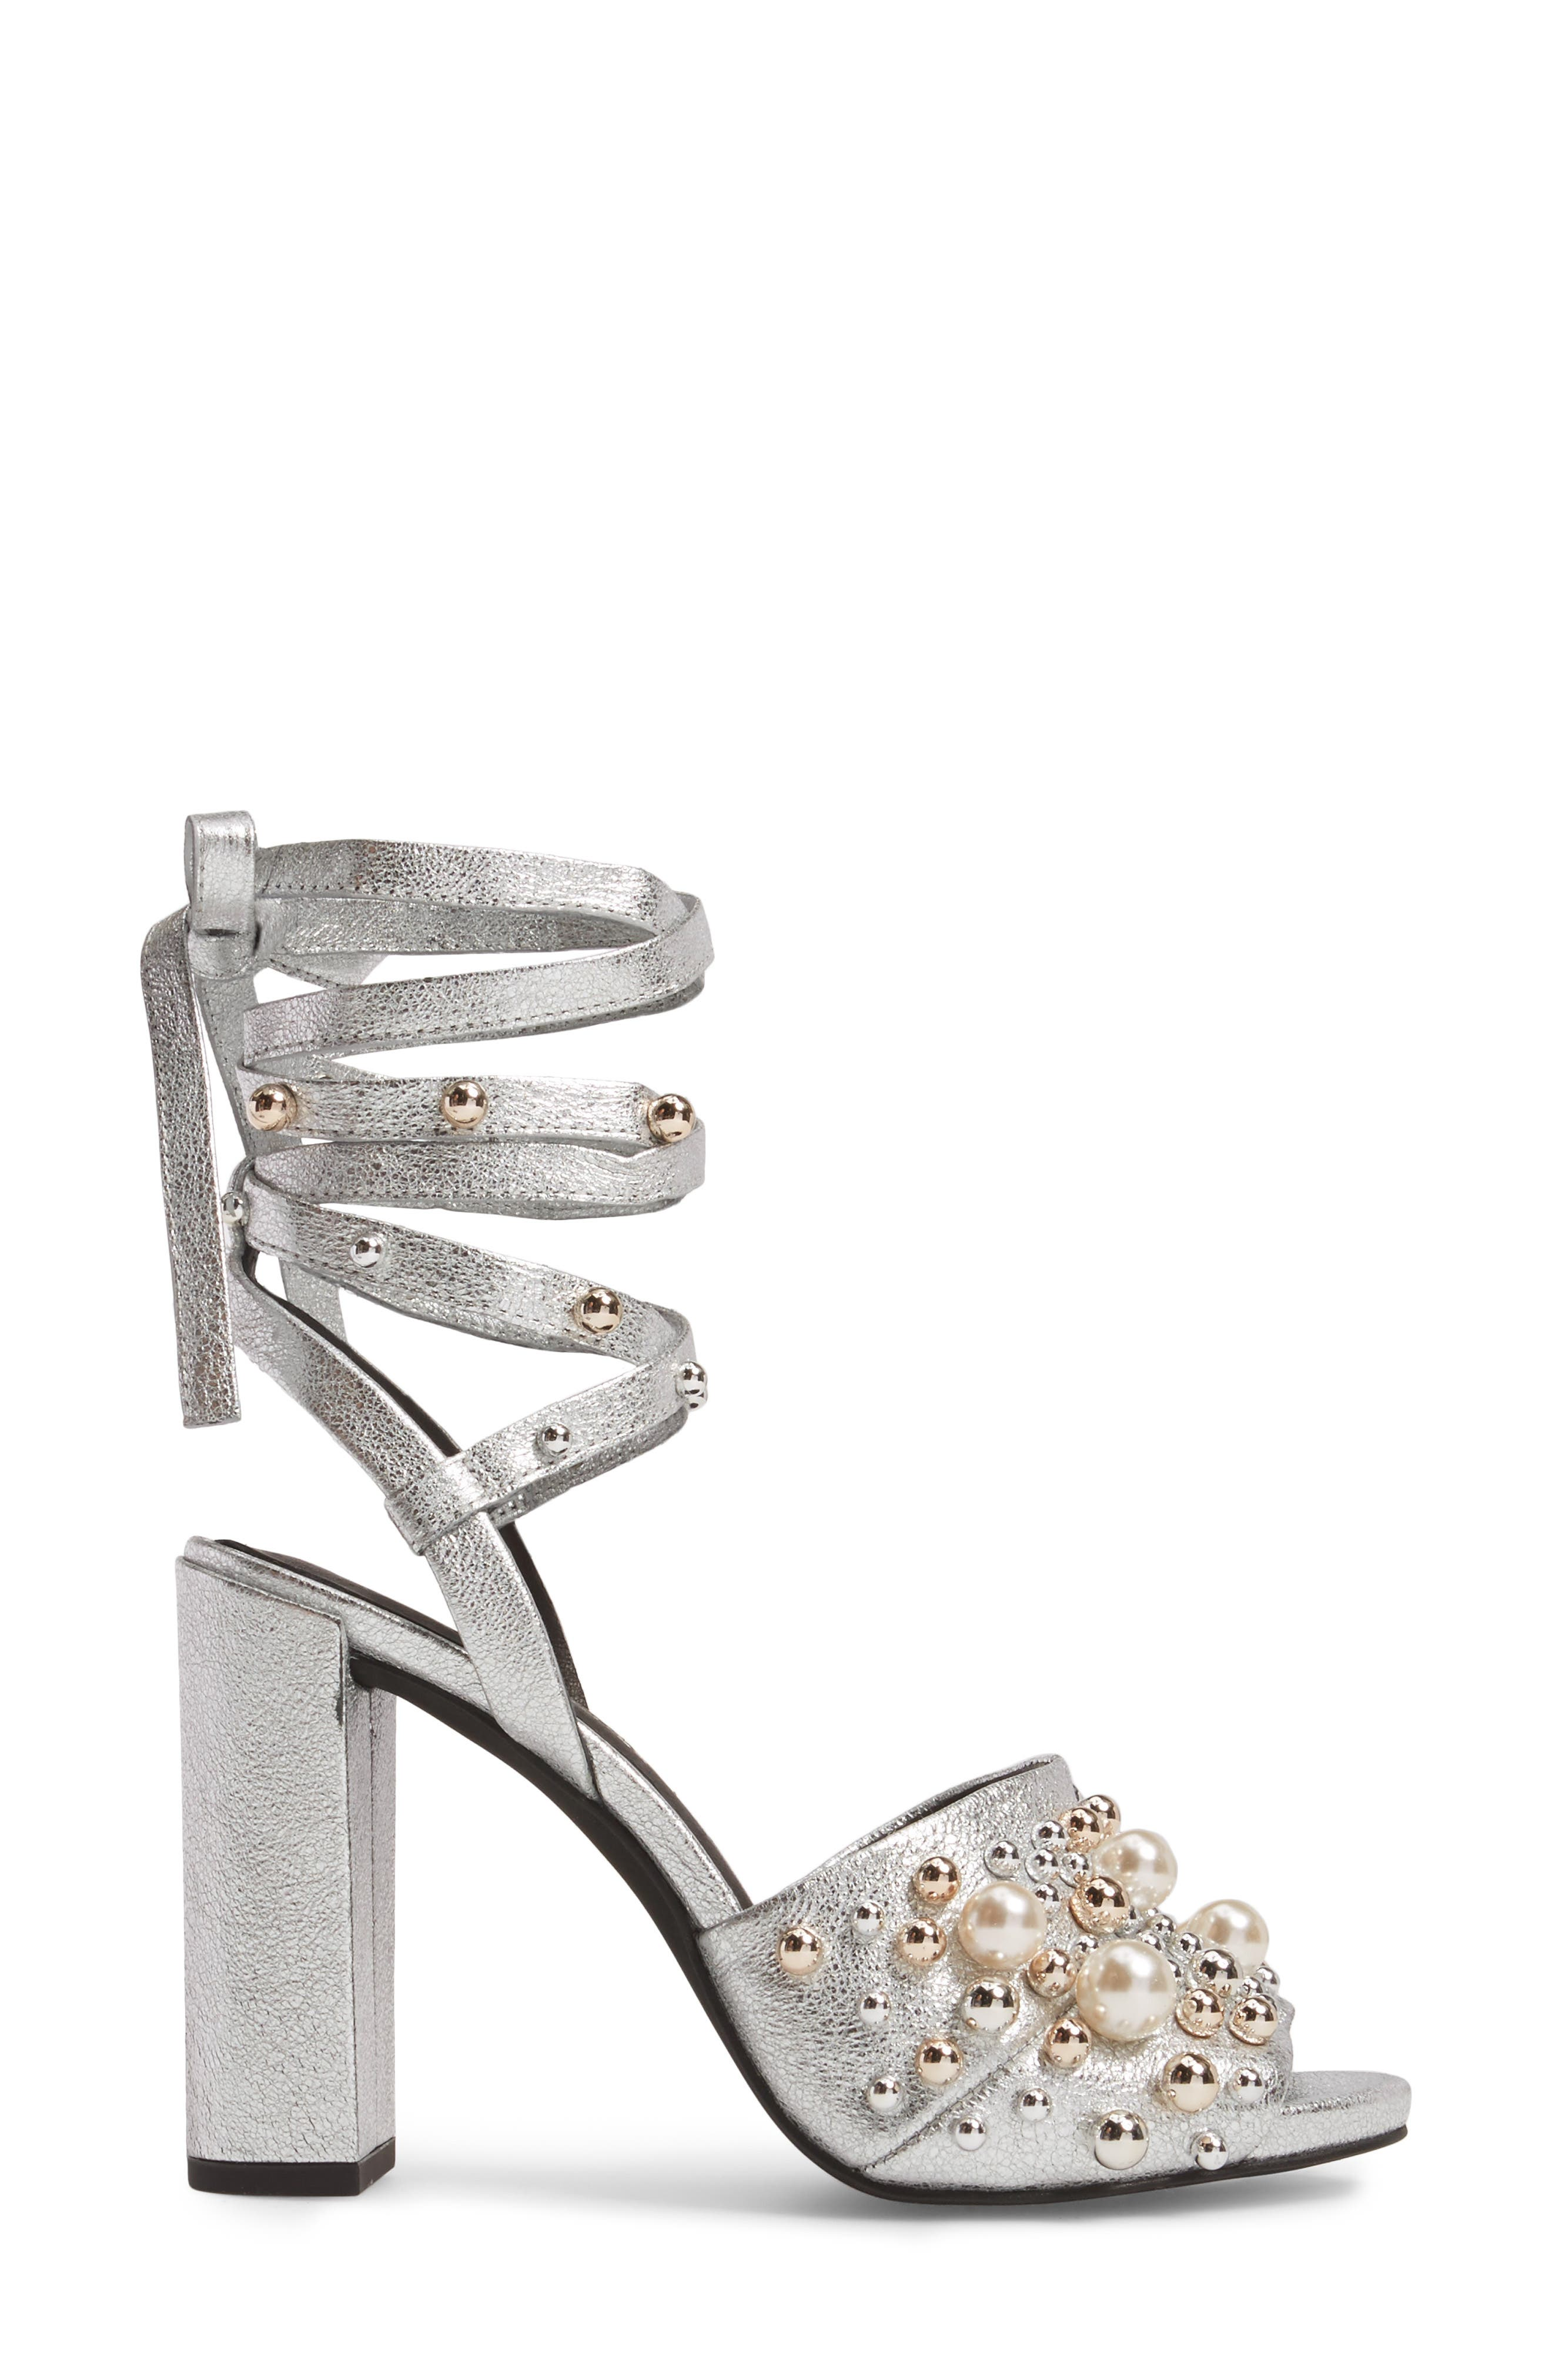 Dierdre Embellished Sandal,                             Alternate thumbnail 3, color,                             Nickel Leather